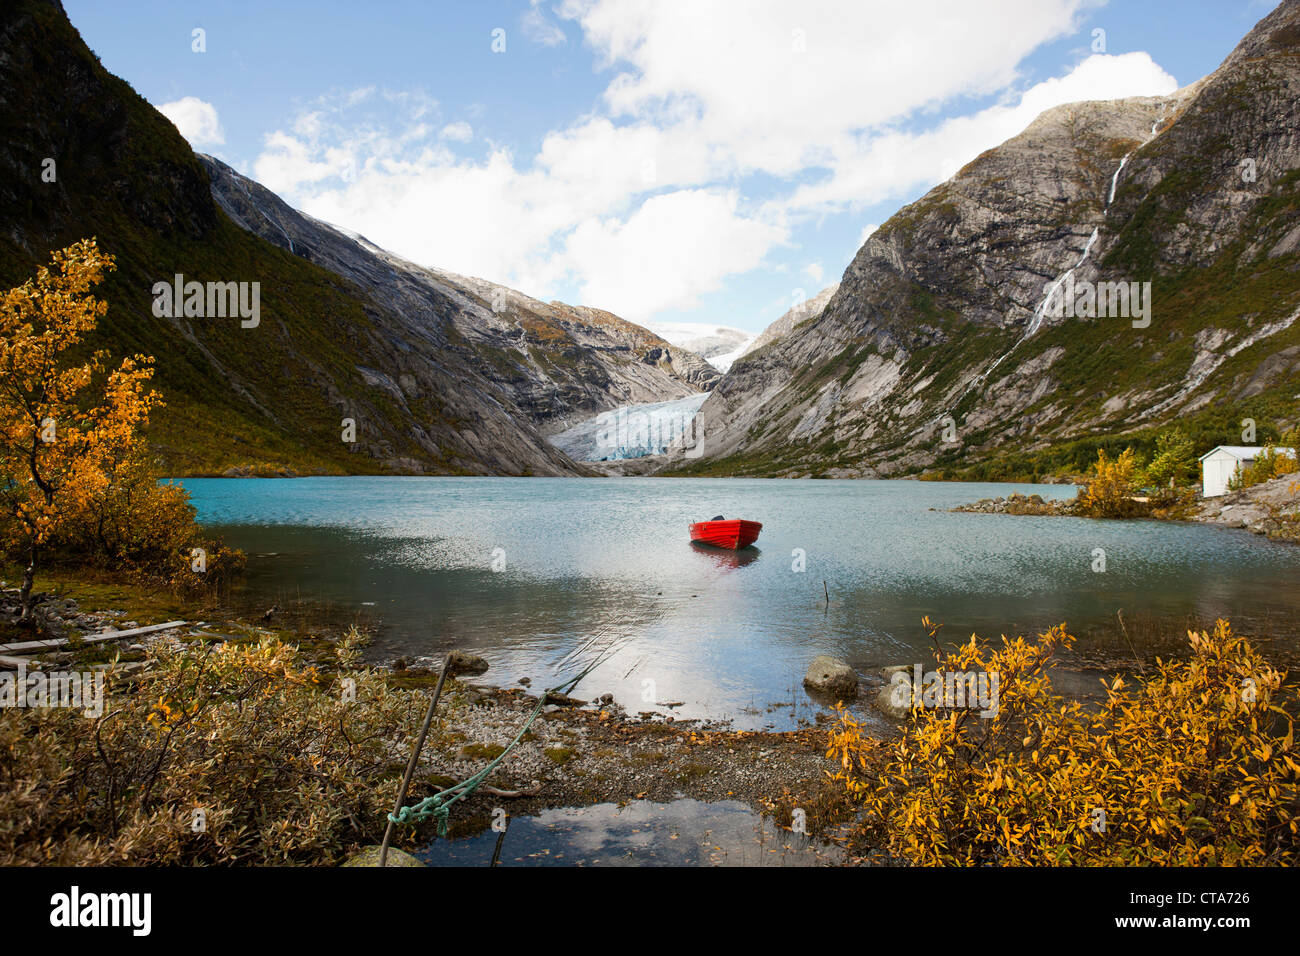 View of Nigardsbreen, red boat on a lake in front of the glacier snout, Autumn, Nigardsbreen, Jostedalsbreen national - Stock Image